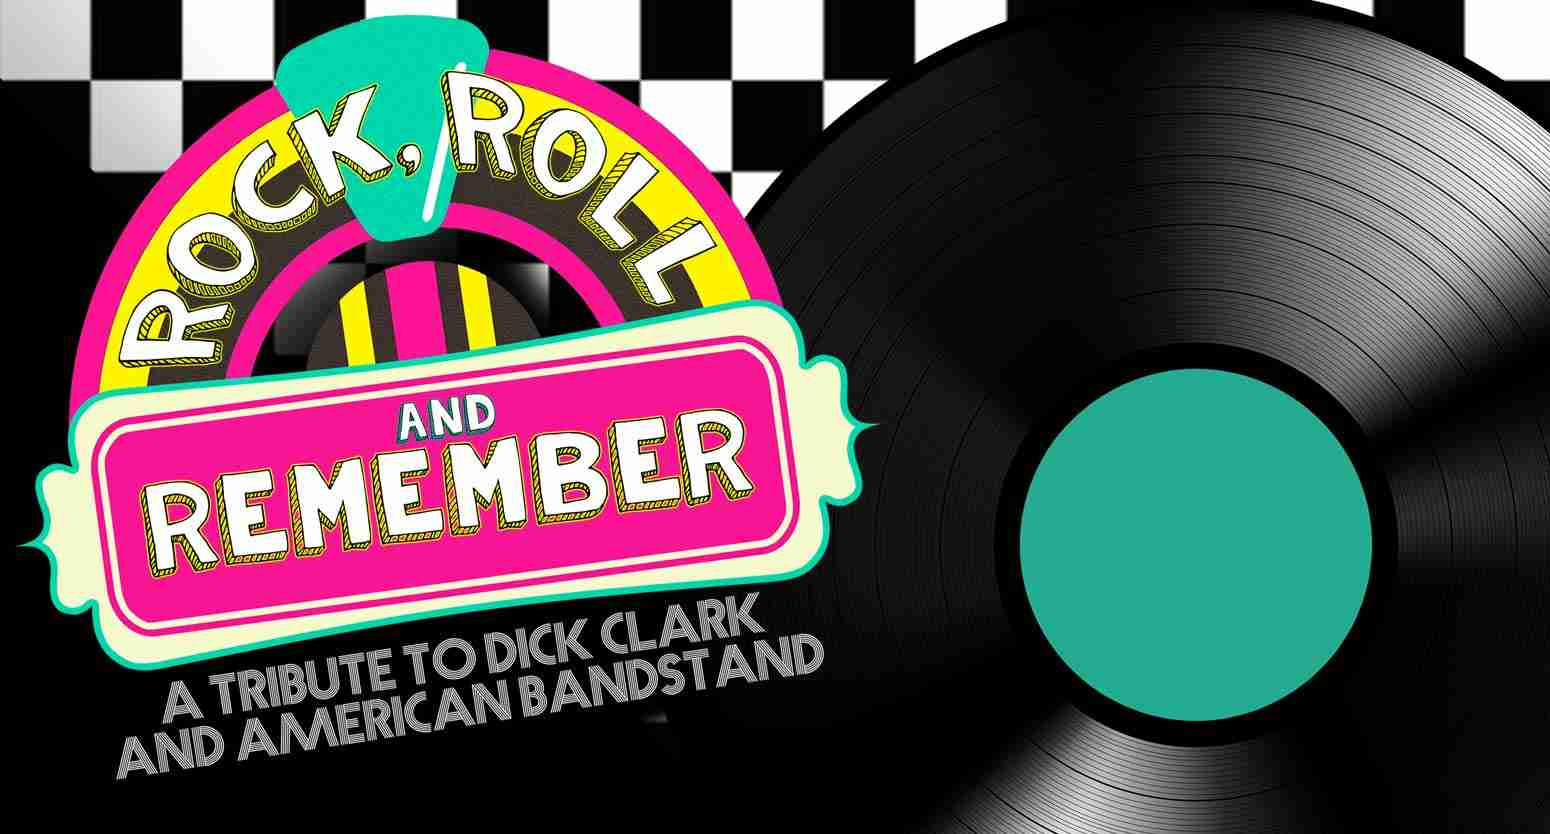 It's LIVE! The Rock, Roll and Remember Trailer